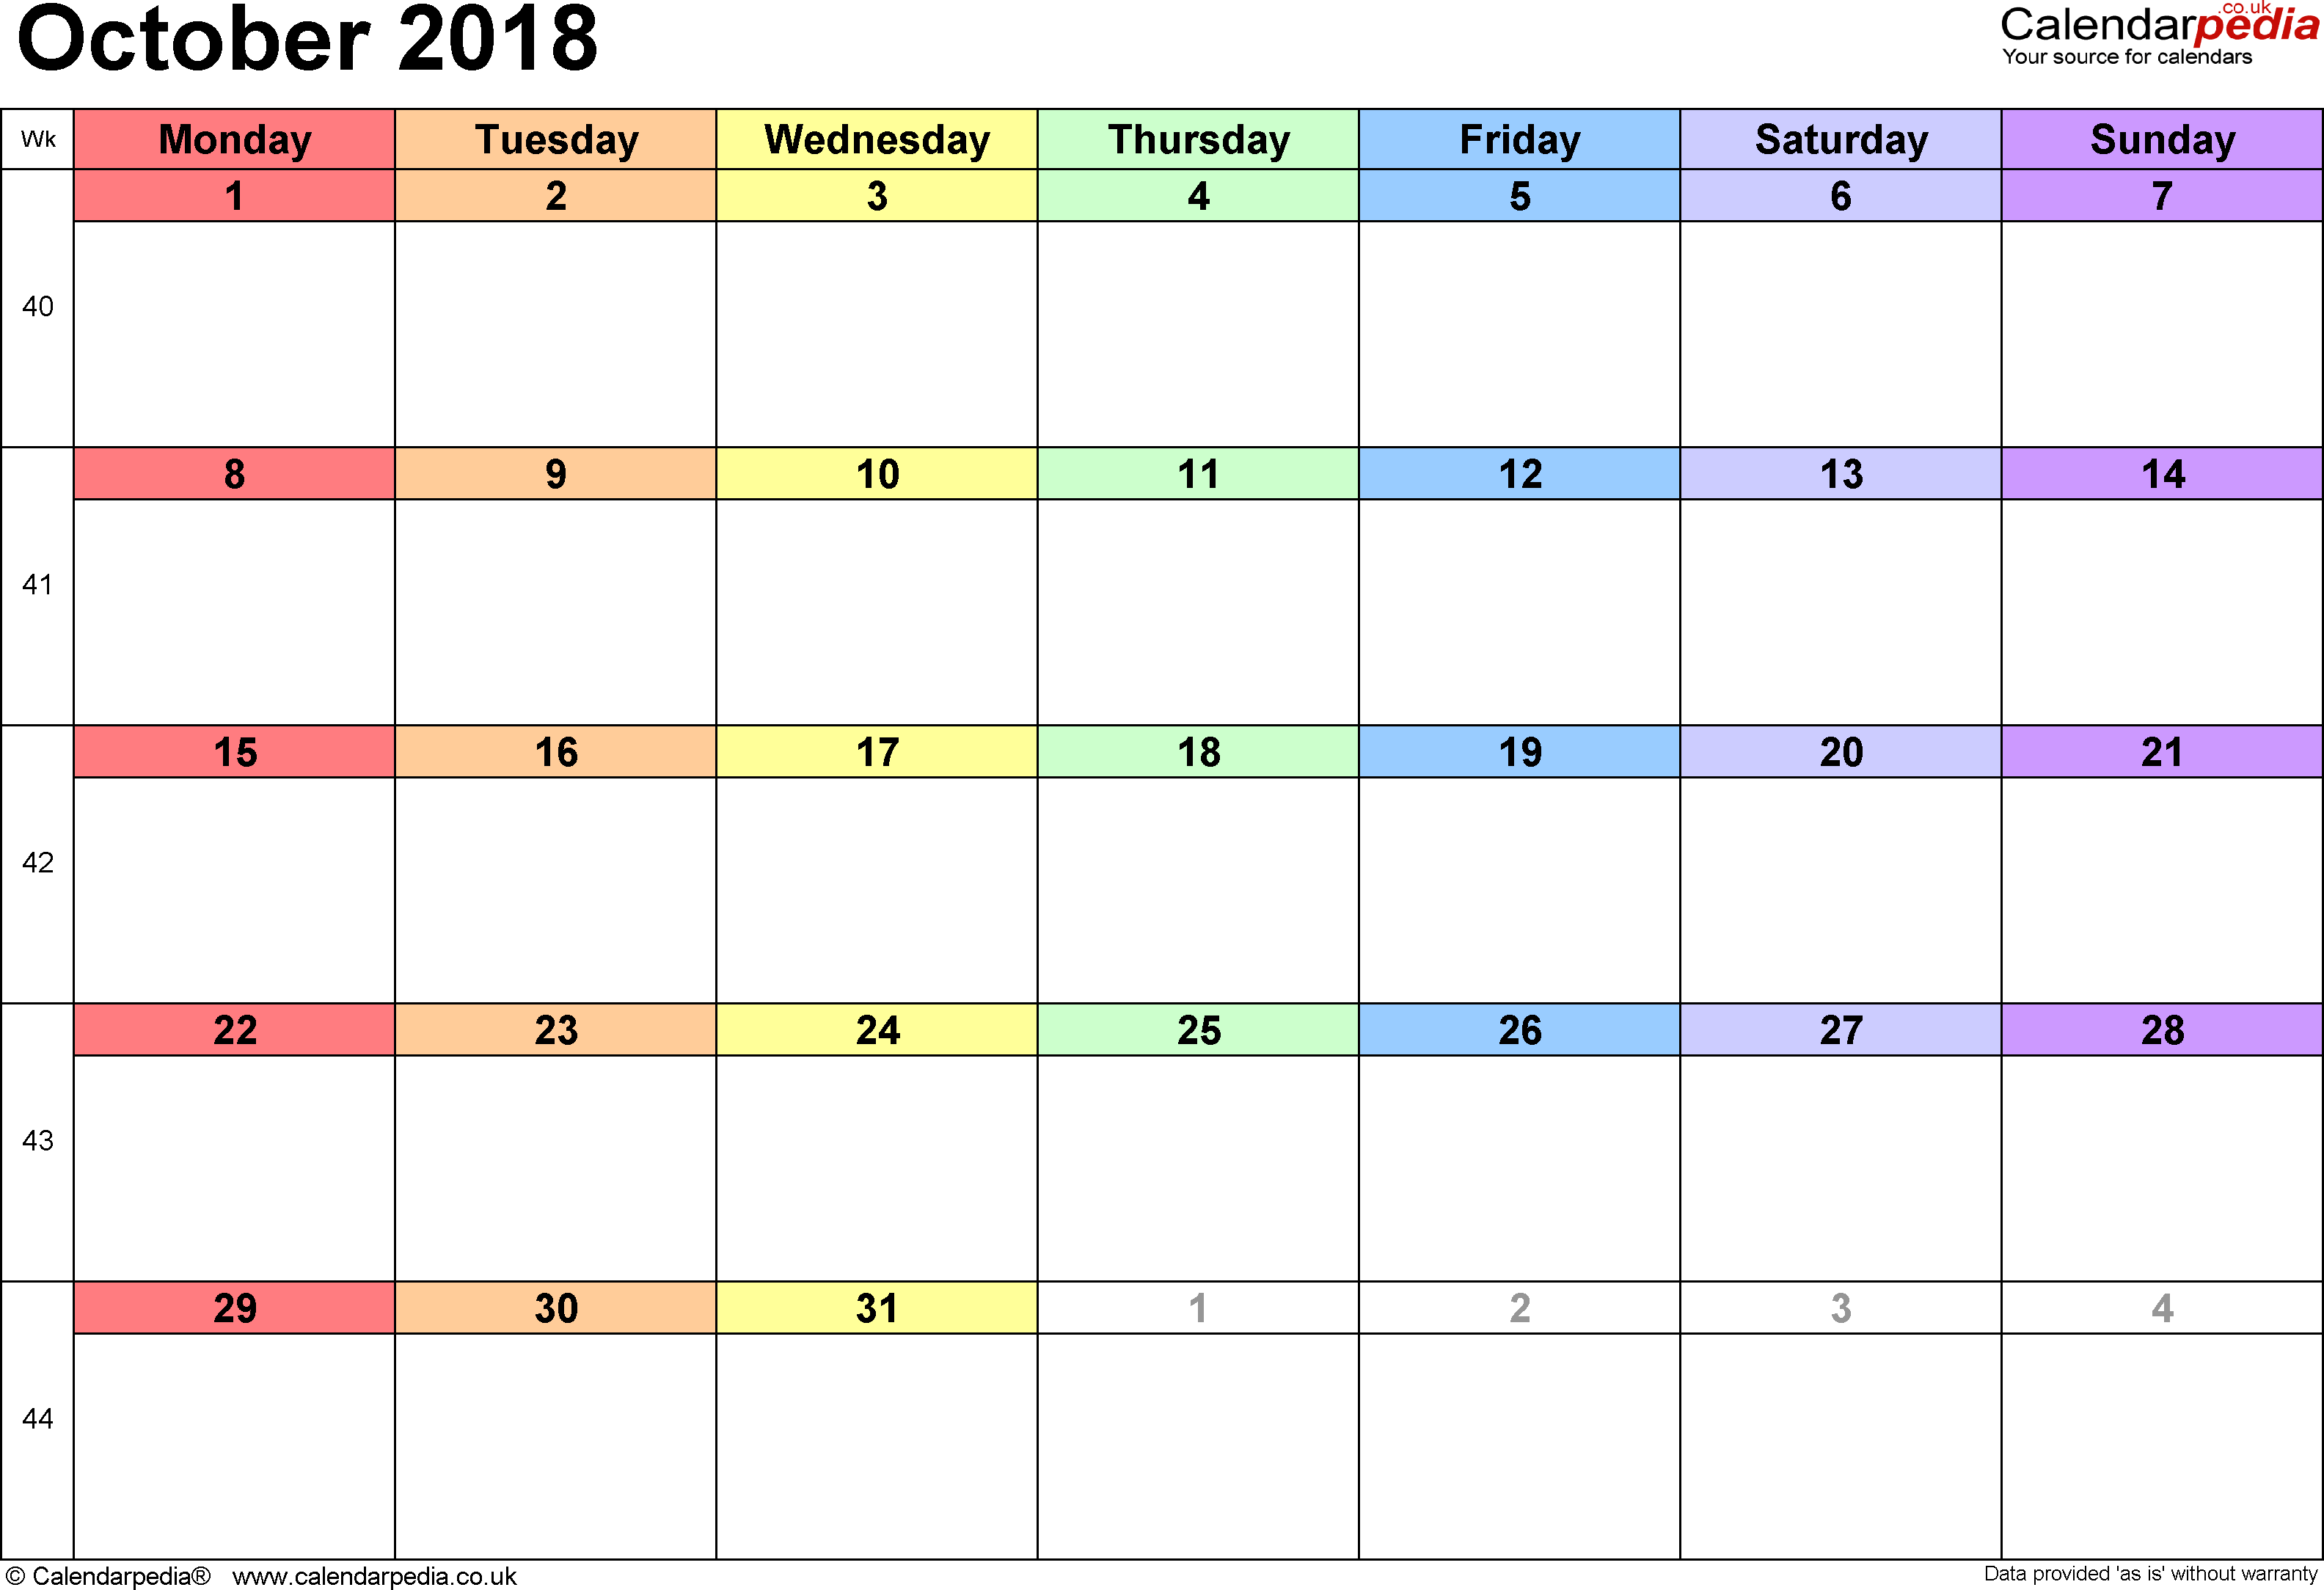 Calendar October 2018, landscape orientation, 1 page, with UK bank holidays and week numbers